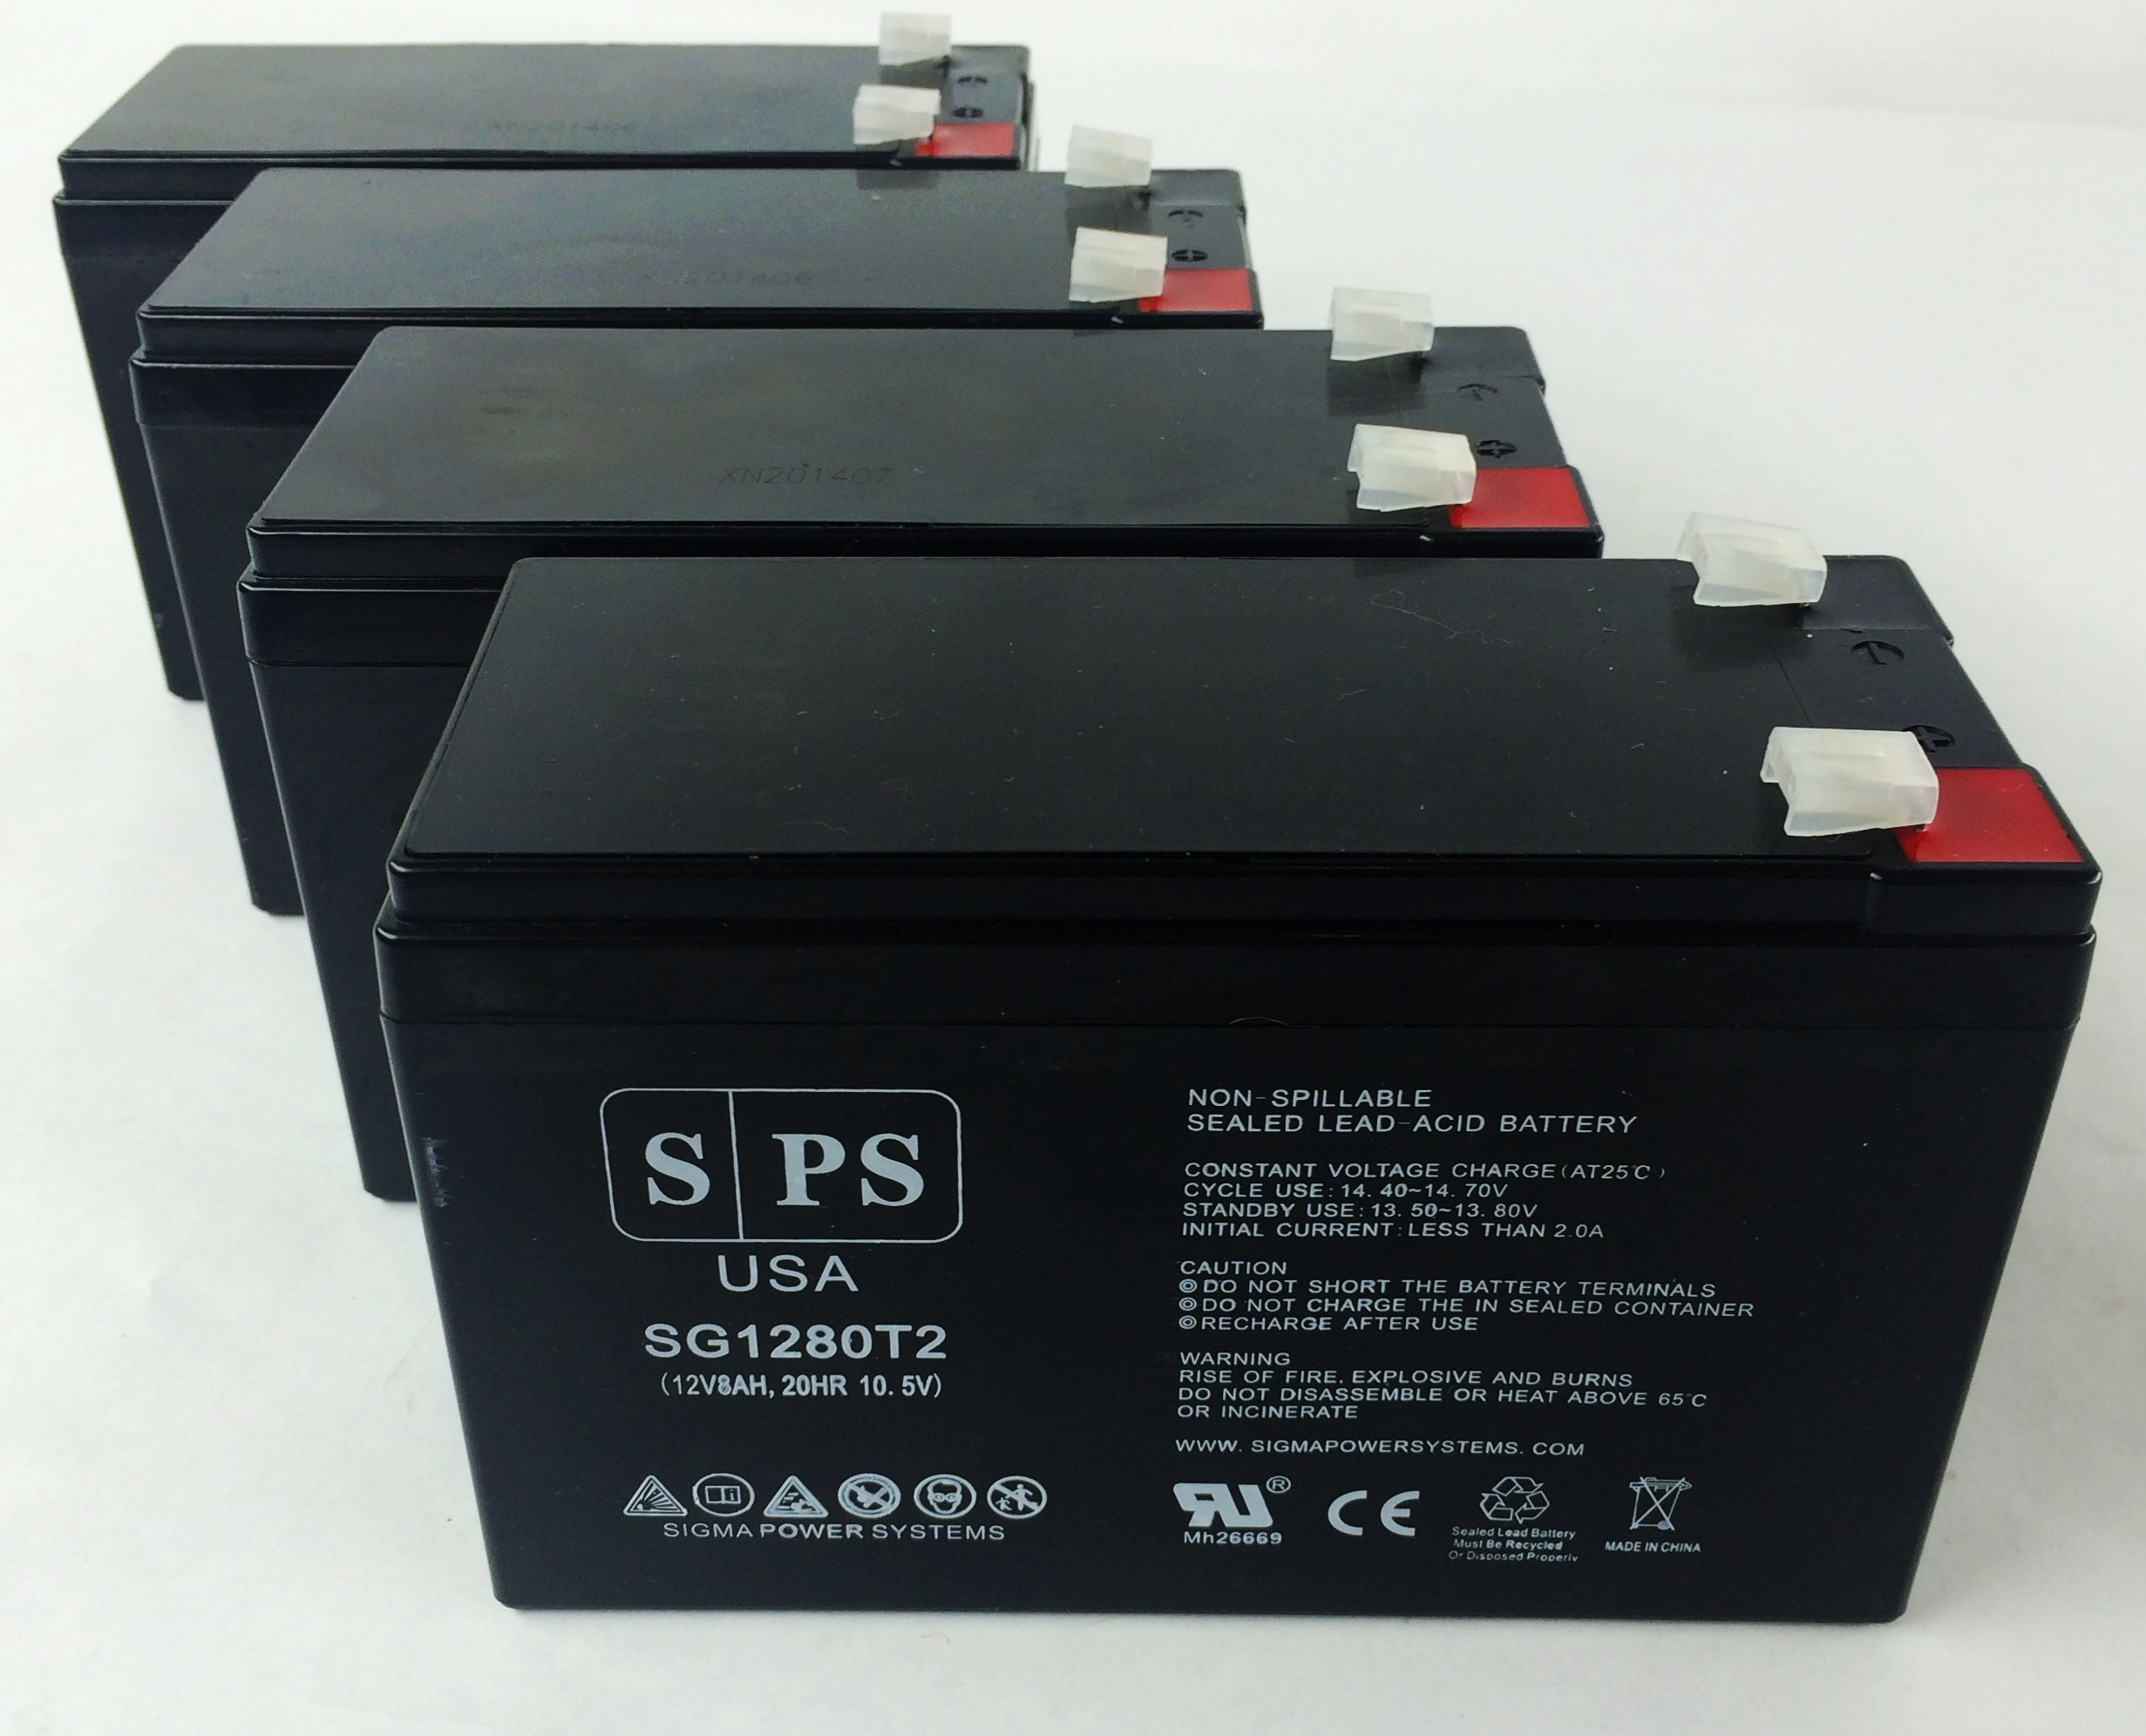 Replacement Battery for APC Professional 12V 8Ah UPS Battery (4 pack)